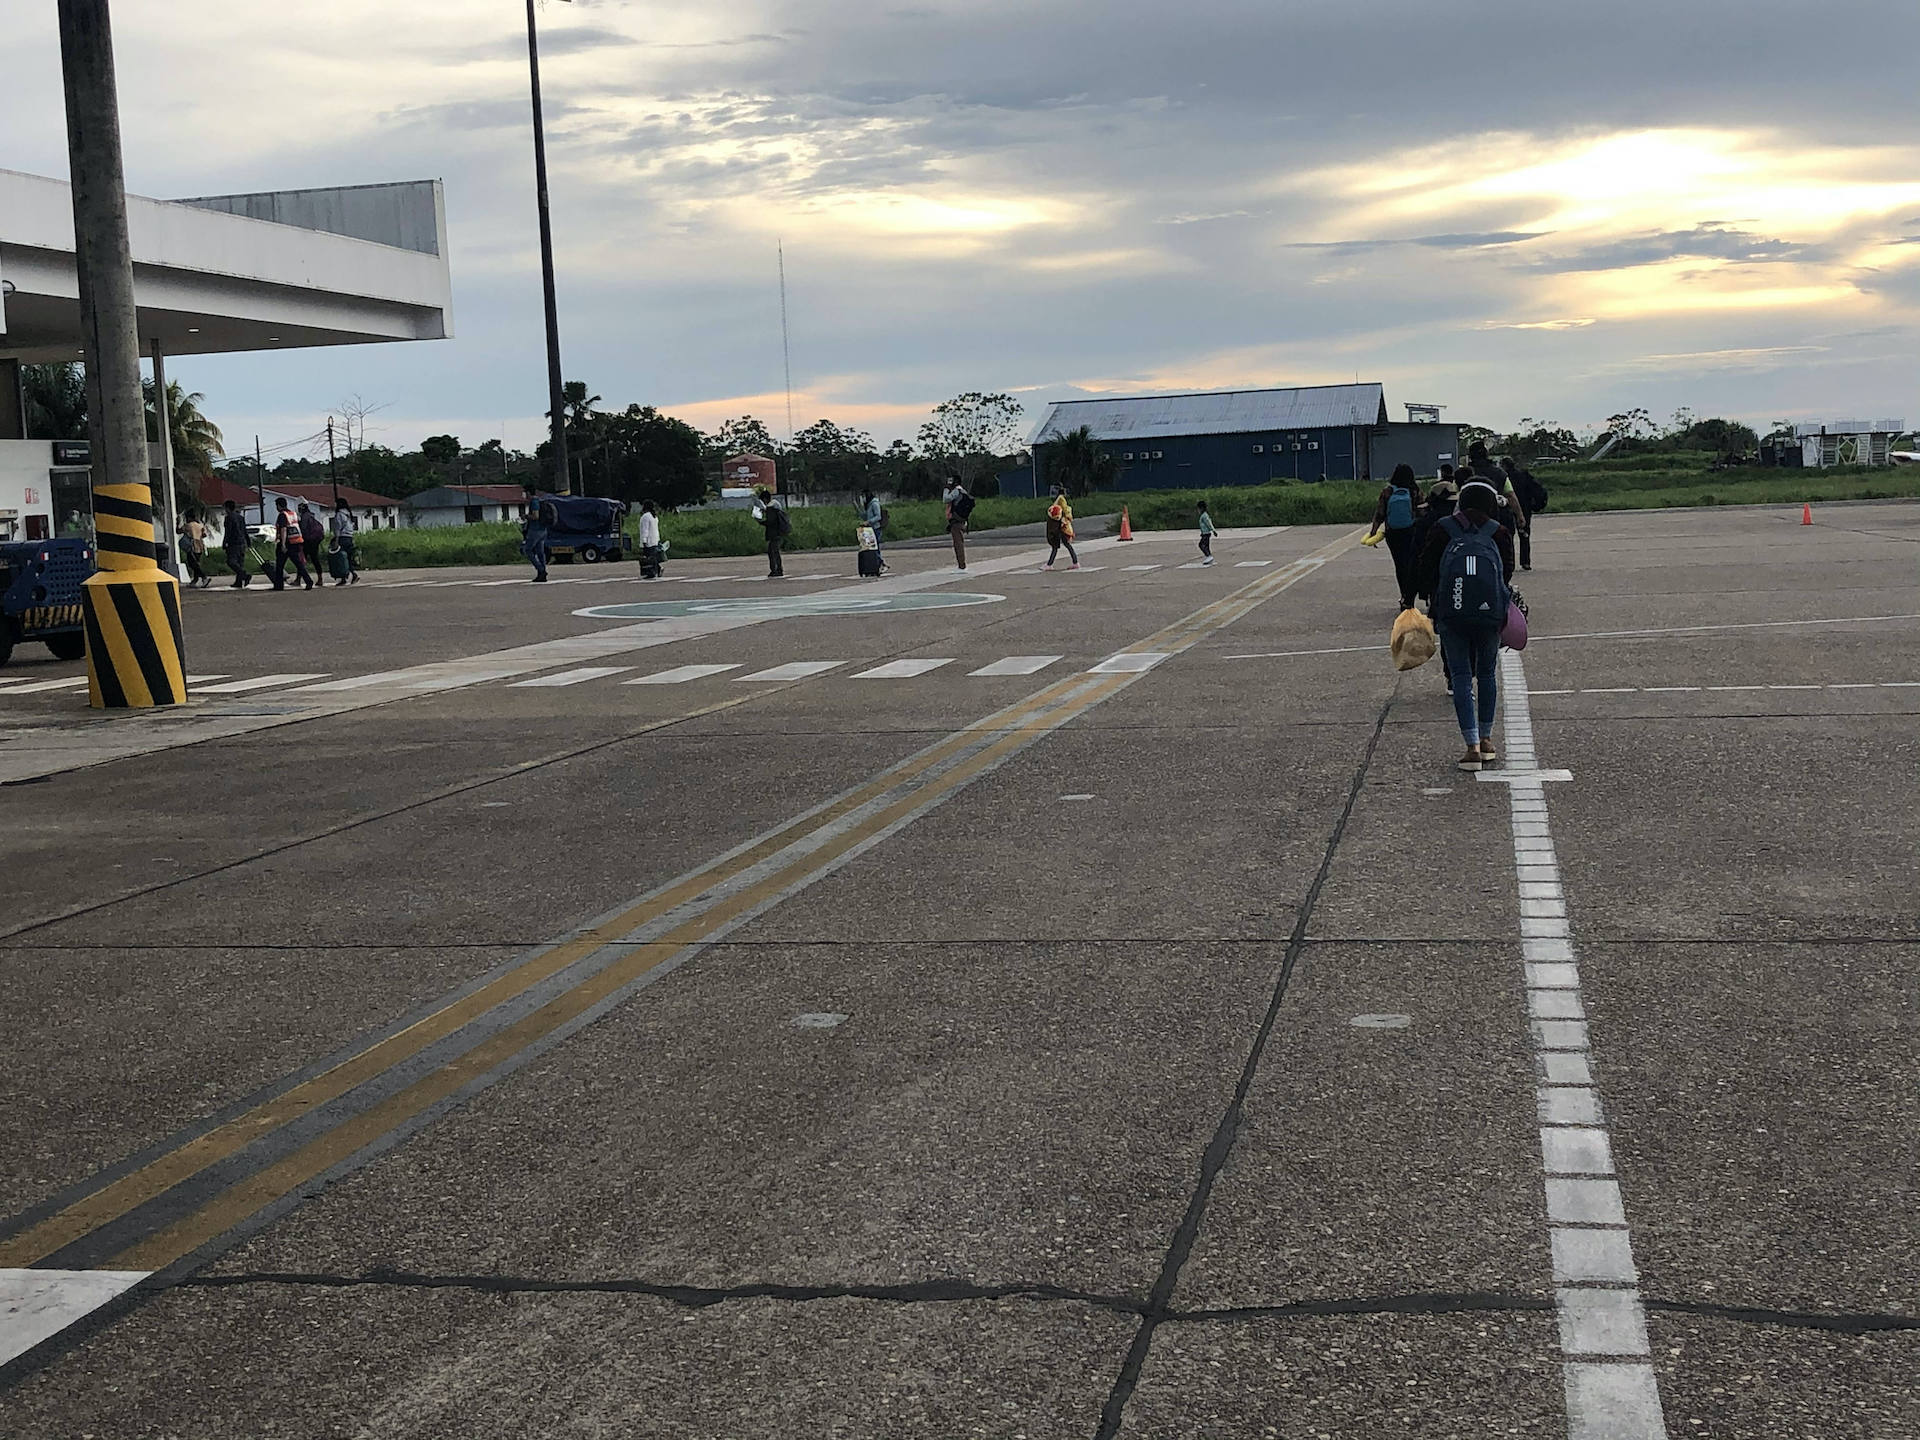 4. Oddly, you must walk single file after existing the airplane, keeping distance, of course. Officals nearby enforce the single file formation